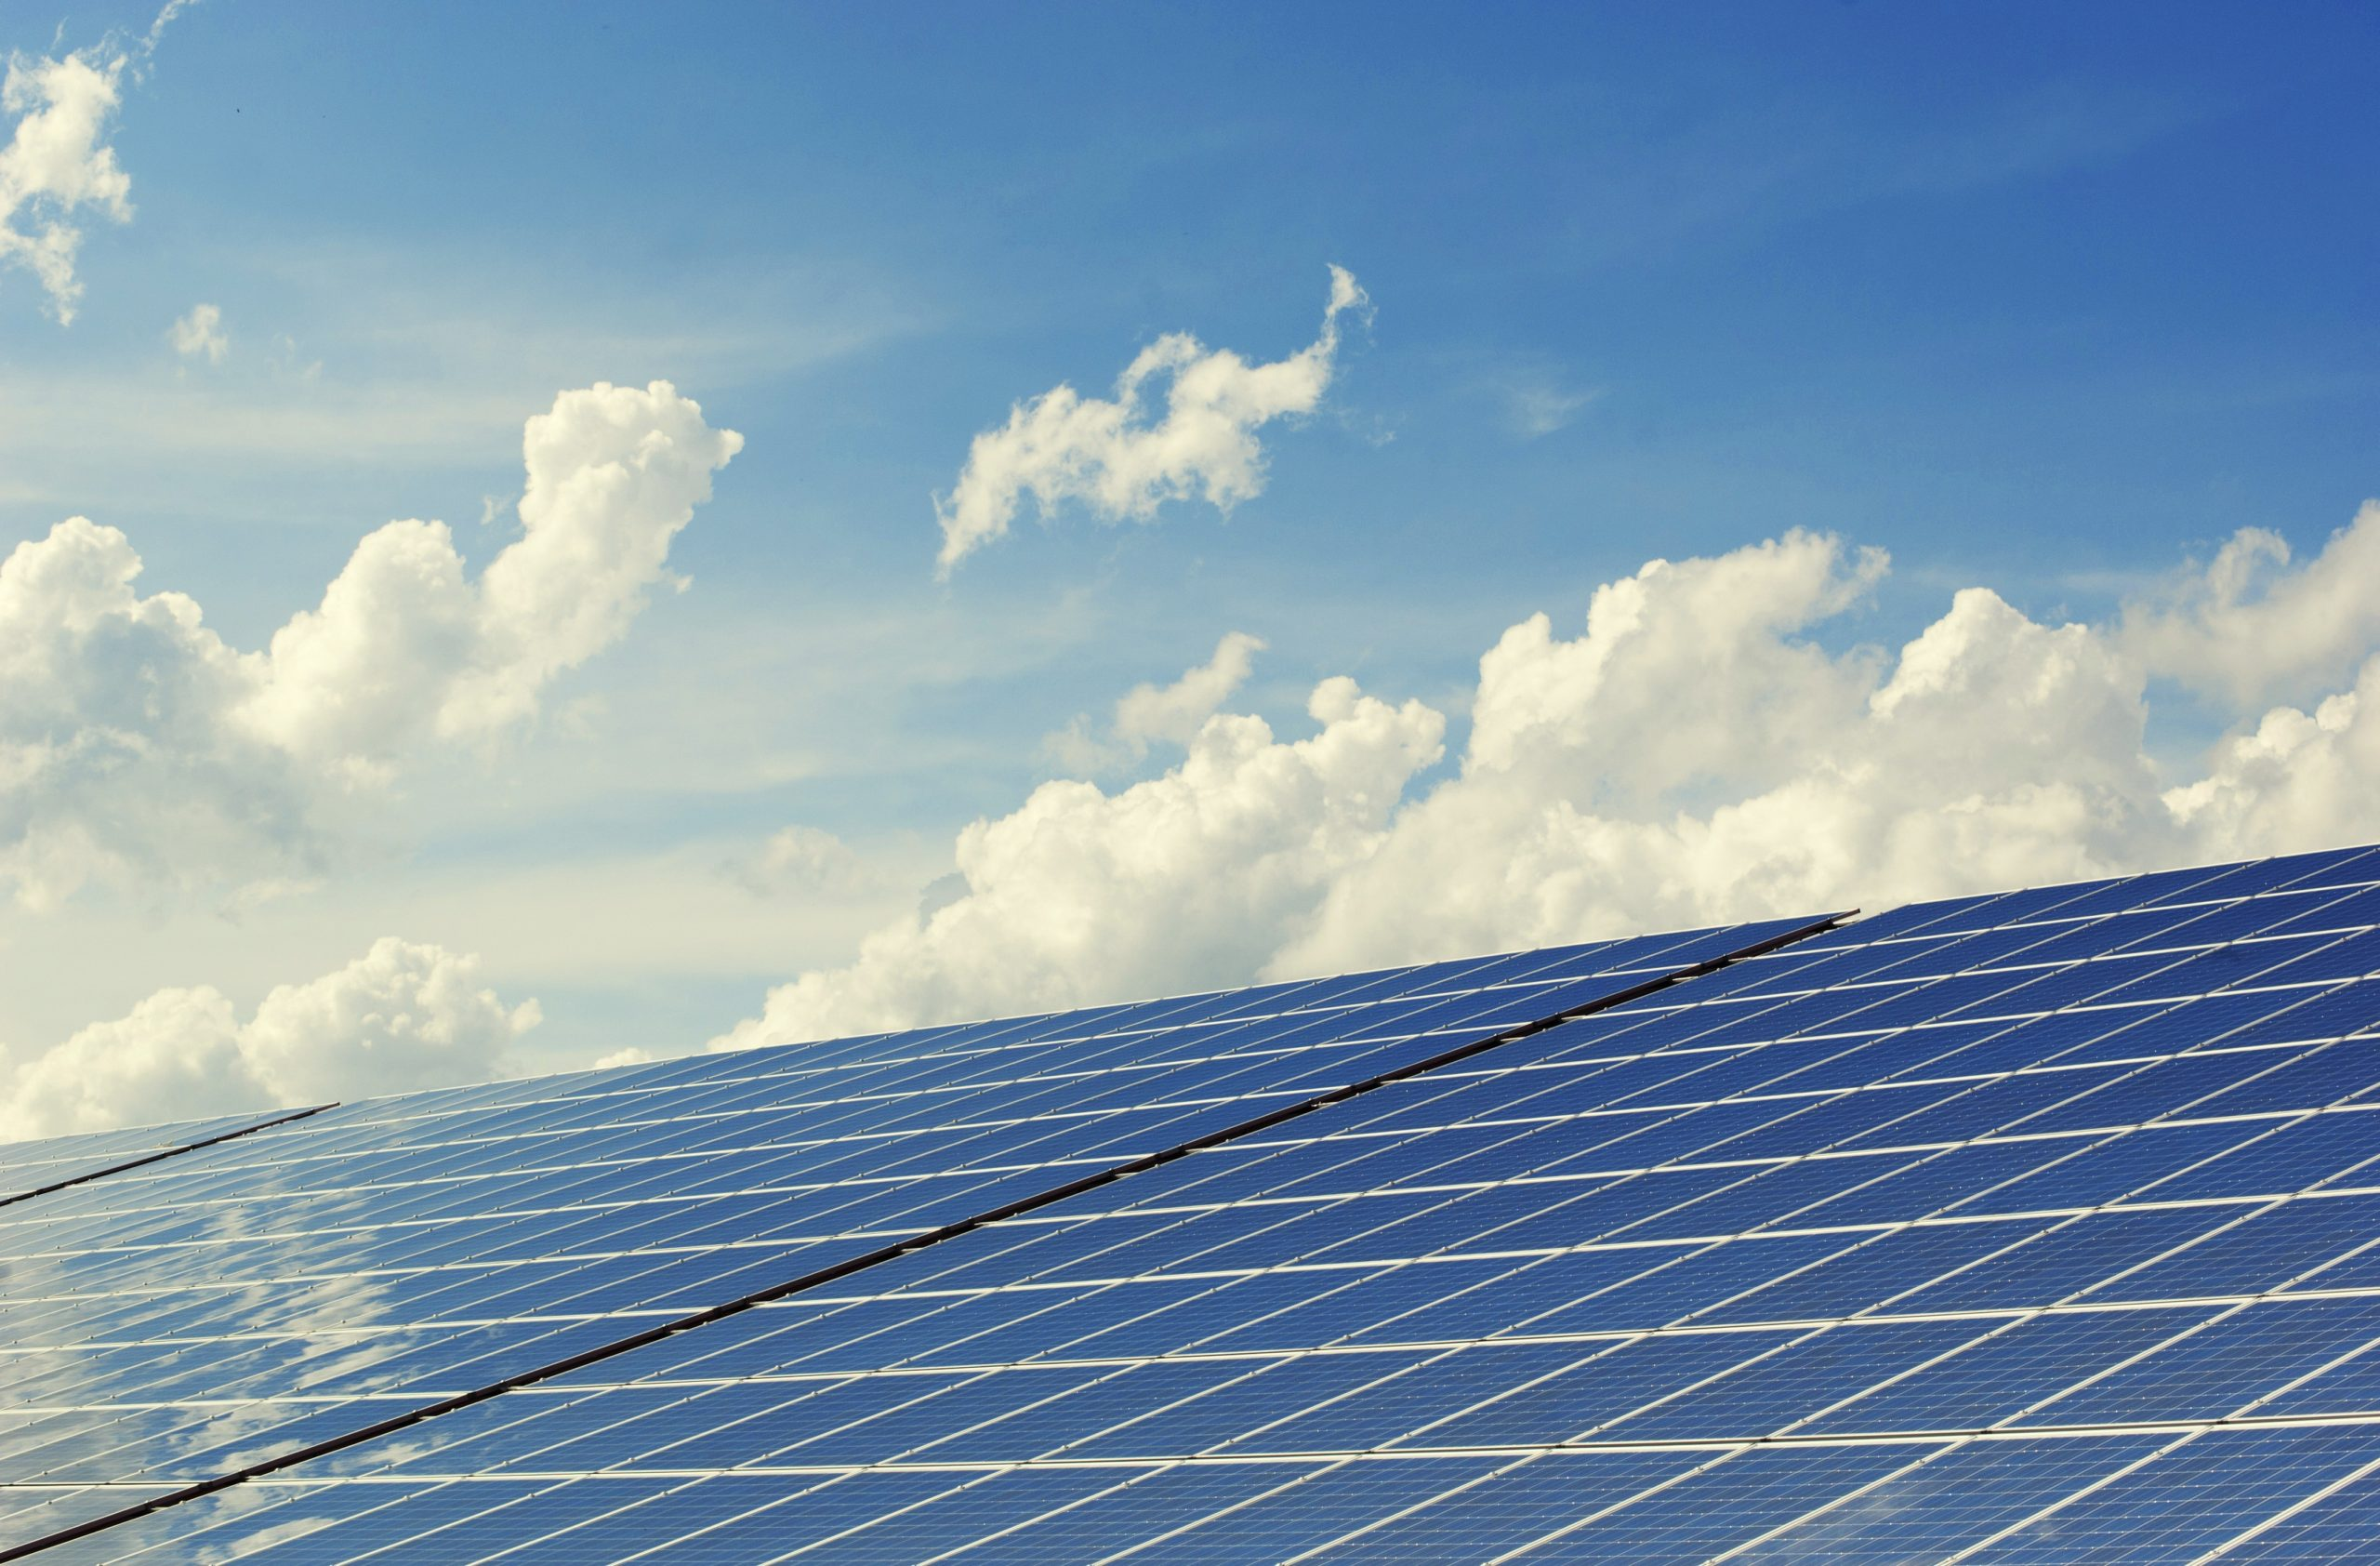 solar panels beneath a blue sky with fluffy clouds